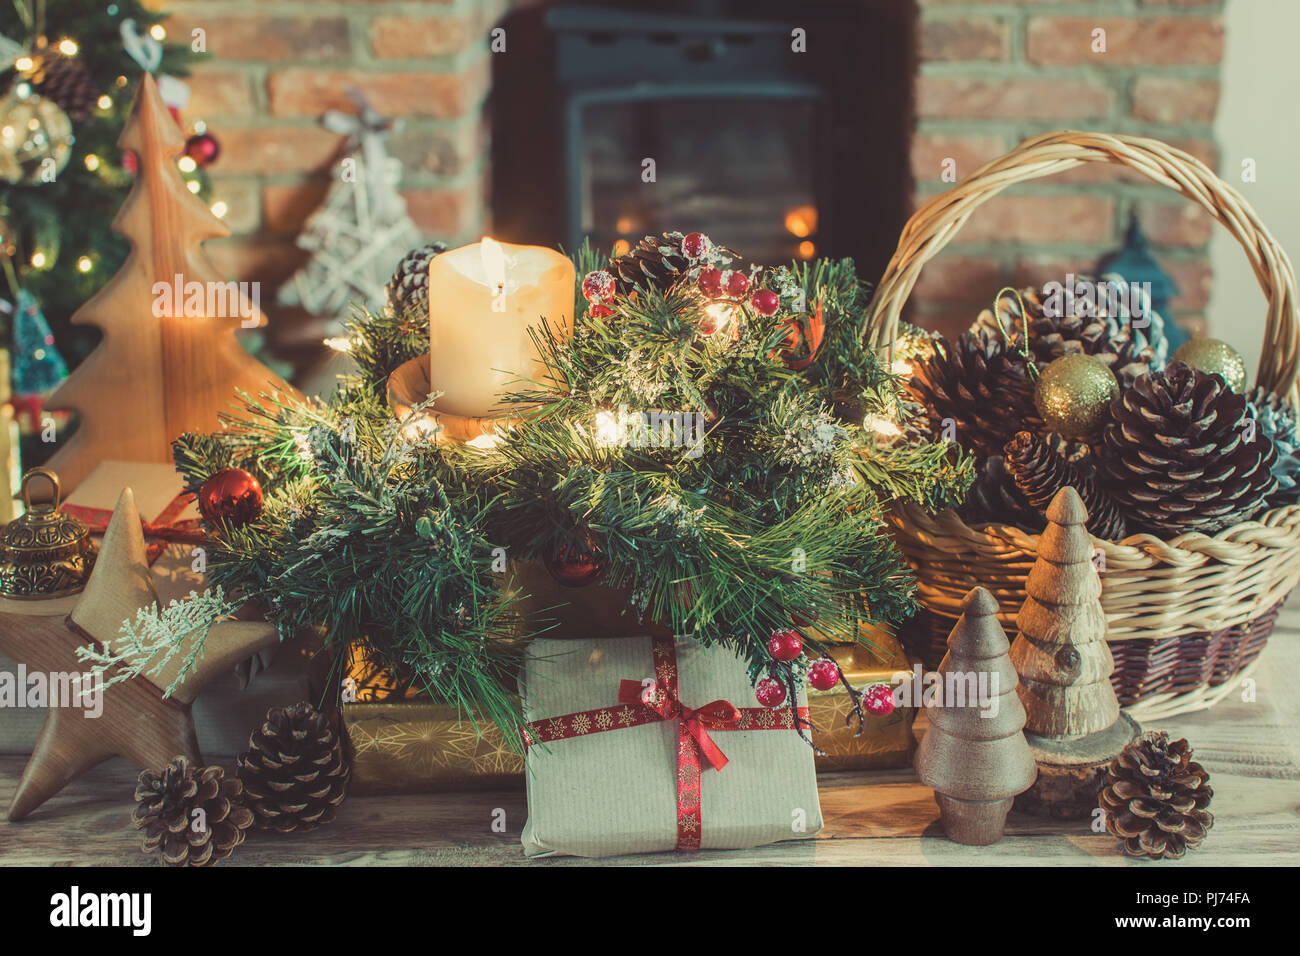 cosy christmas composition presents and decorations on the table in front of the fireplace with woodburner lit up christmas tree with baubles and or - Light Up Presents Christmas Decorations